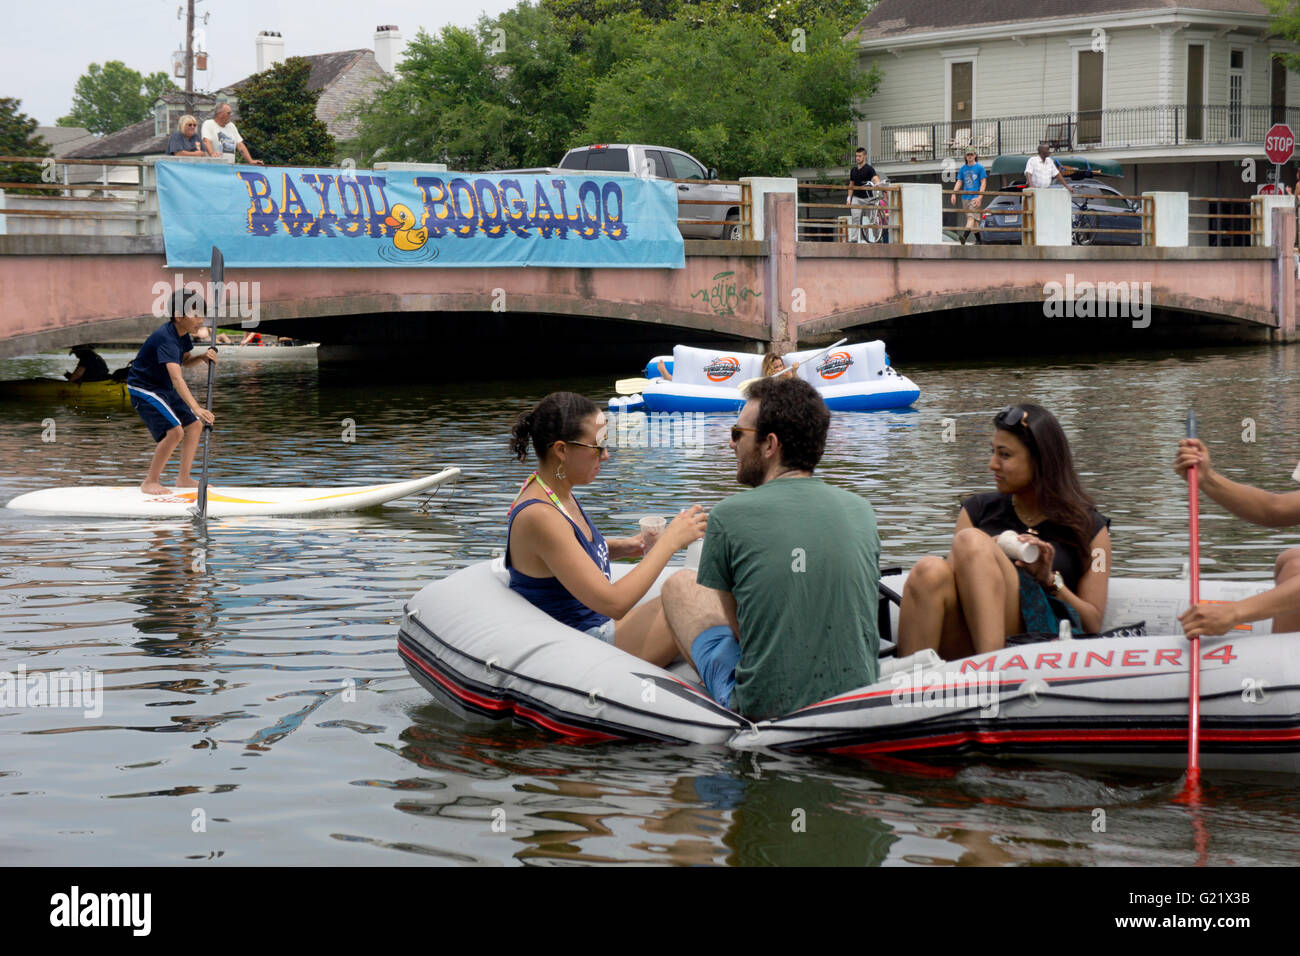 Paddle-boarding and rafting on the water at the Bayou Boogaloo festival in New Orleans. - Stock Image